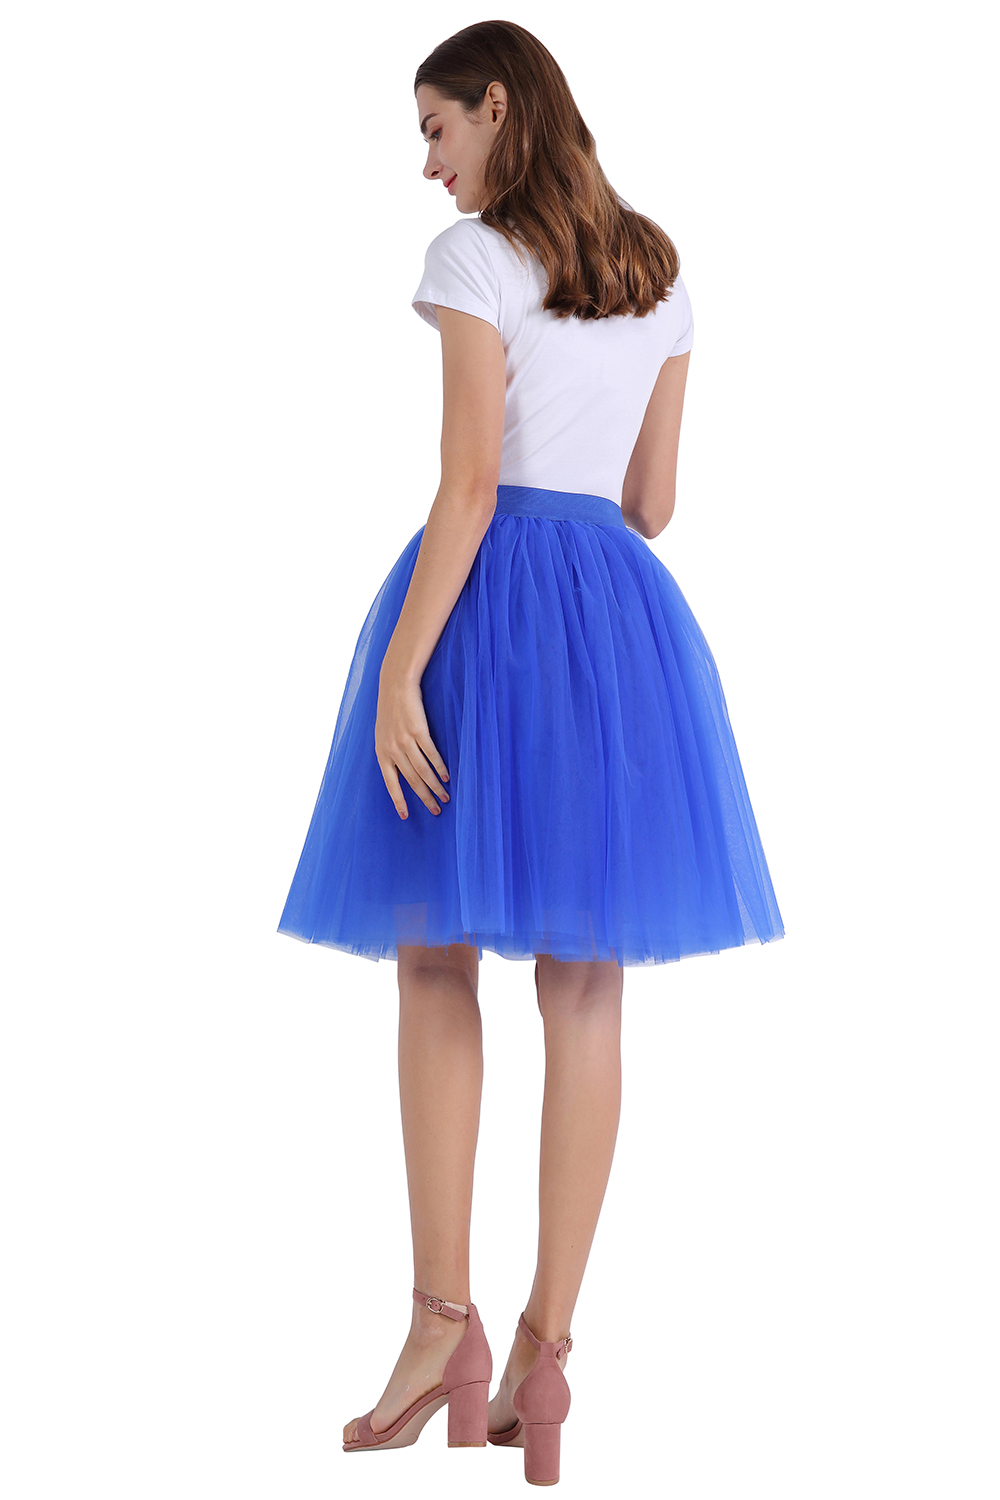 Купить с кэшбэком Rockabilly Short Petticoat Retro Underskirt 7 Layers Tulle Skirt Women Adult Tutu Wedding Accessories